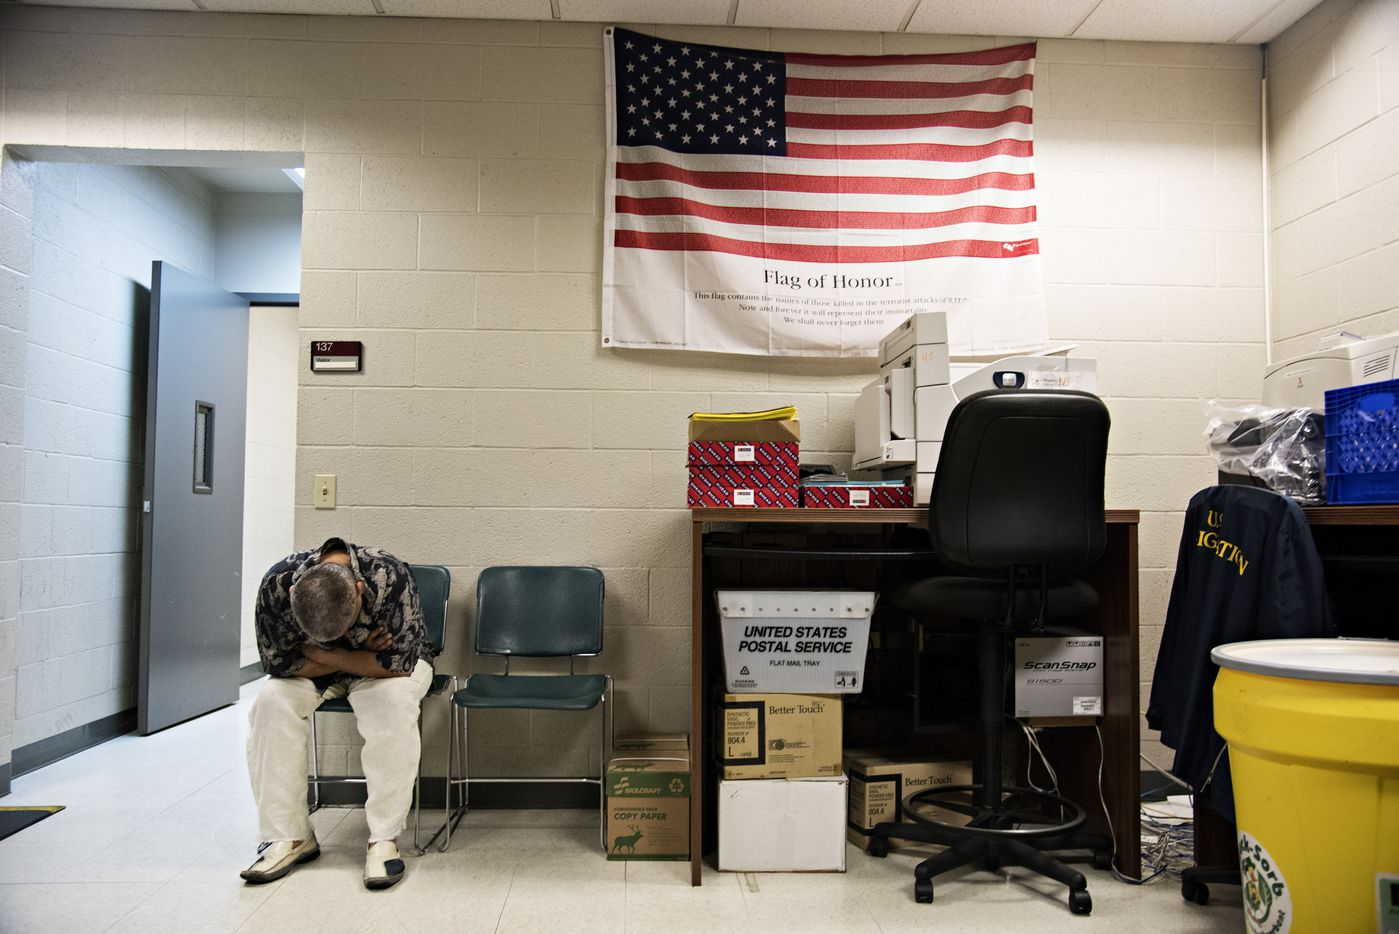 A man arrested by Immigration and Customs Enforcement agents waits to be processed at their field office in Riverside, Calif., June 22, 2017.